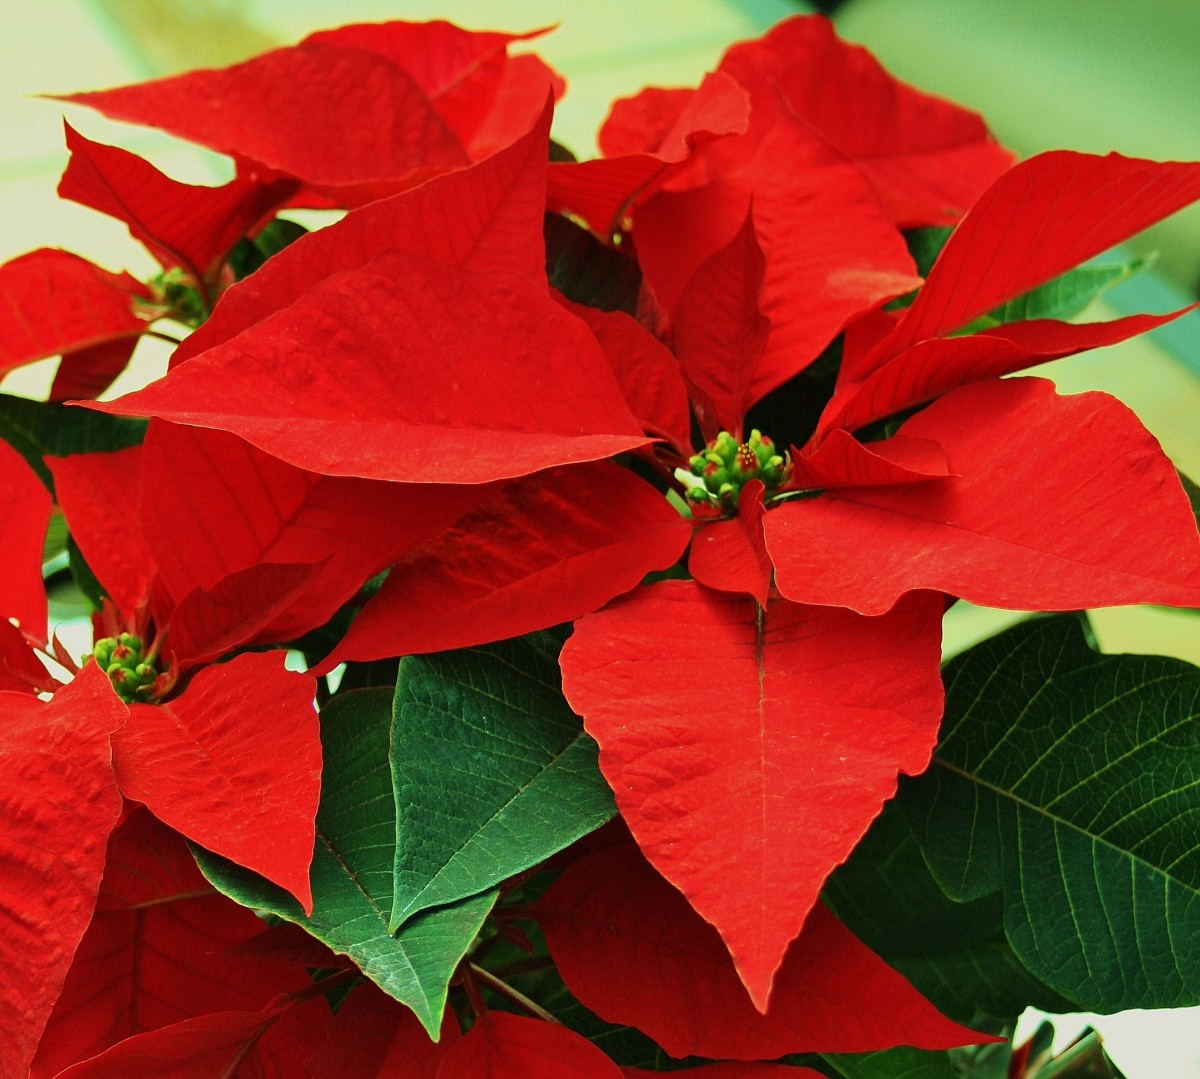 How to Make Poinsettias Last Longer